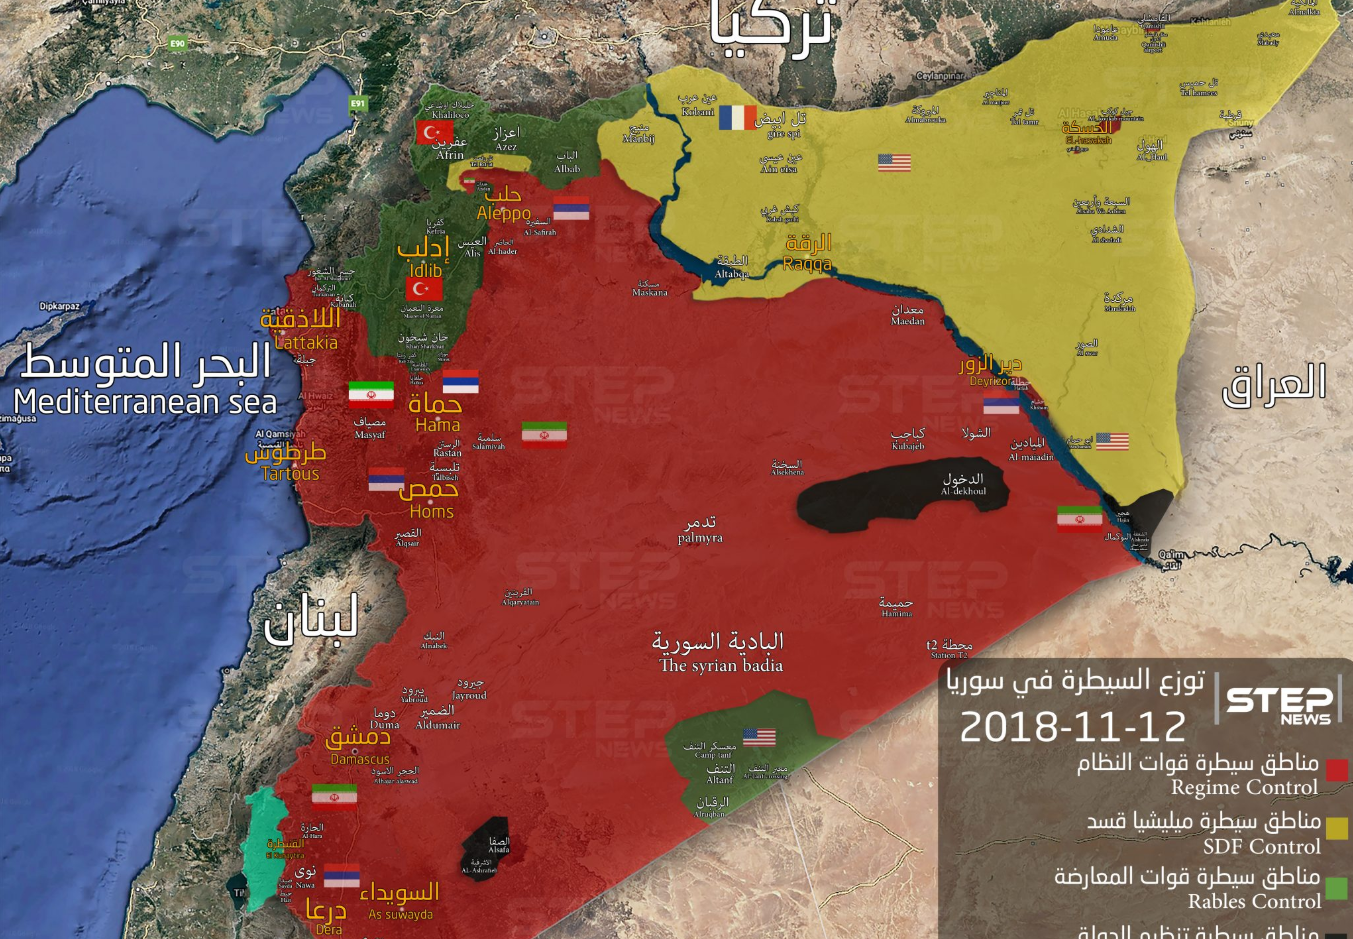 Map of the control areas in Syria, updated to November 12, 2018: The area controlled by the Syrian regime (red); the Kurdish SDF (yellow); the rebel organizations (green); ISIS (black).